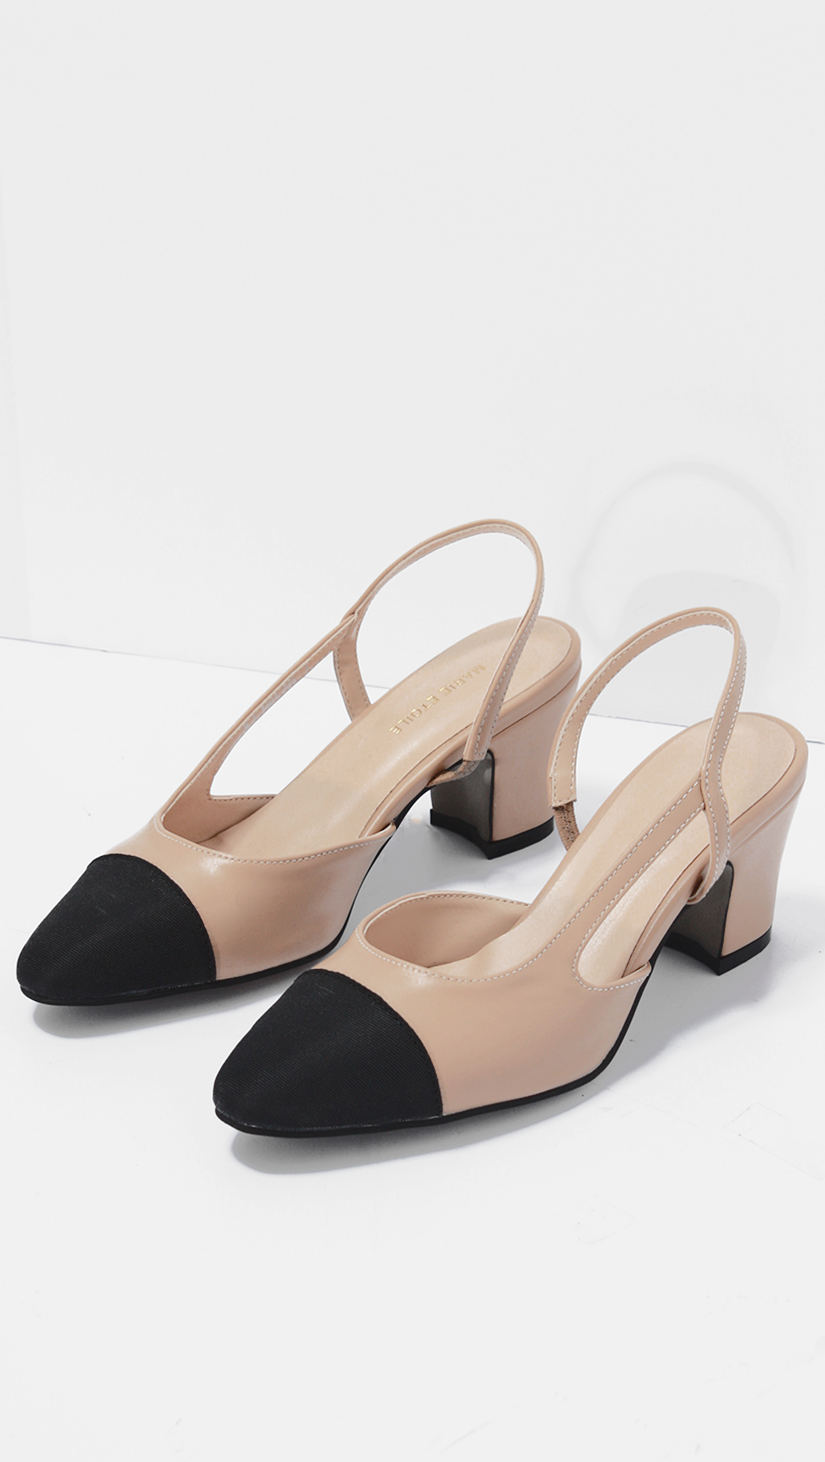 two-tone sling back pumps Cheap Sale Official Site t8tTCsy